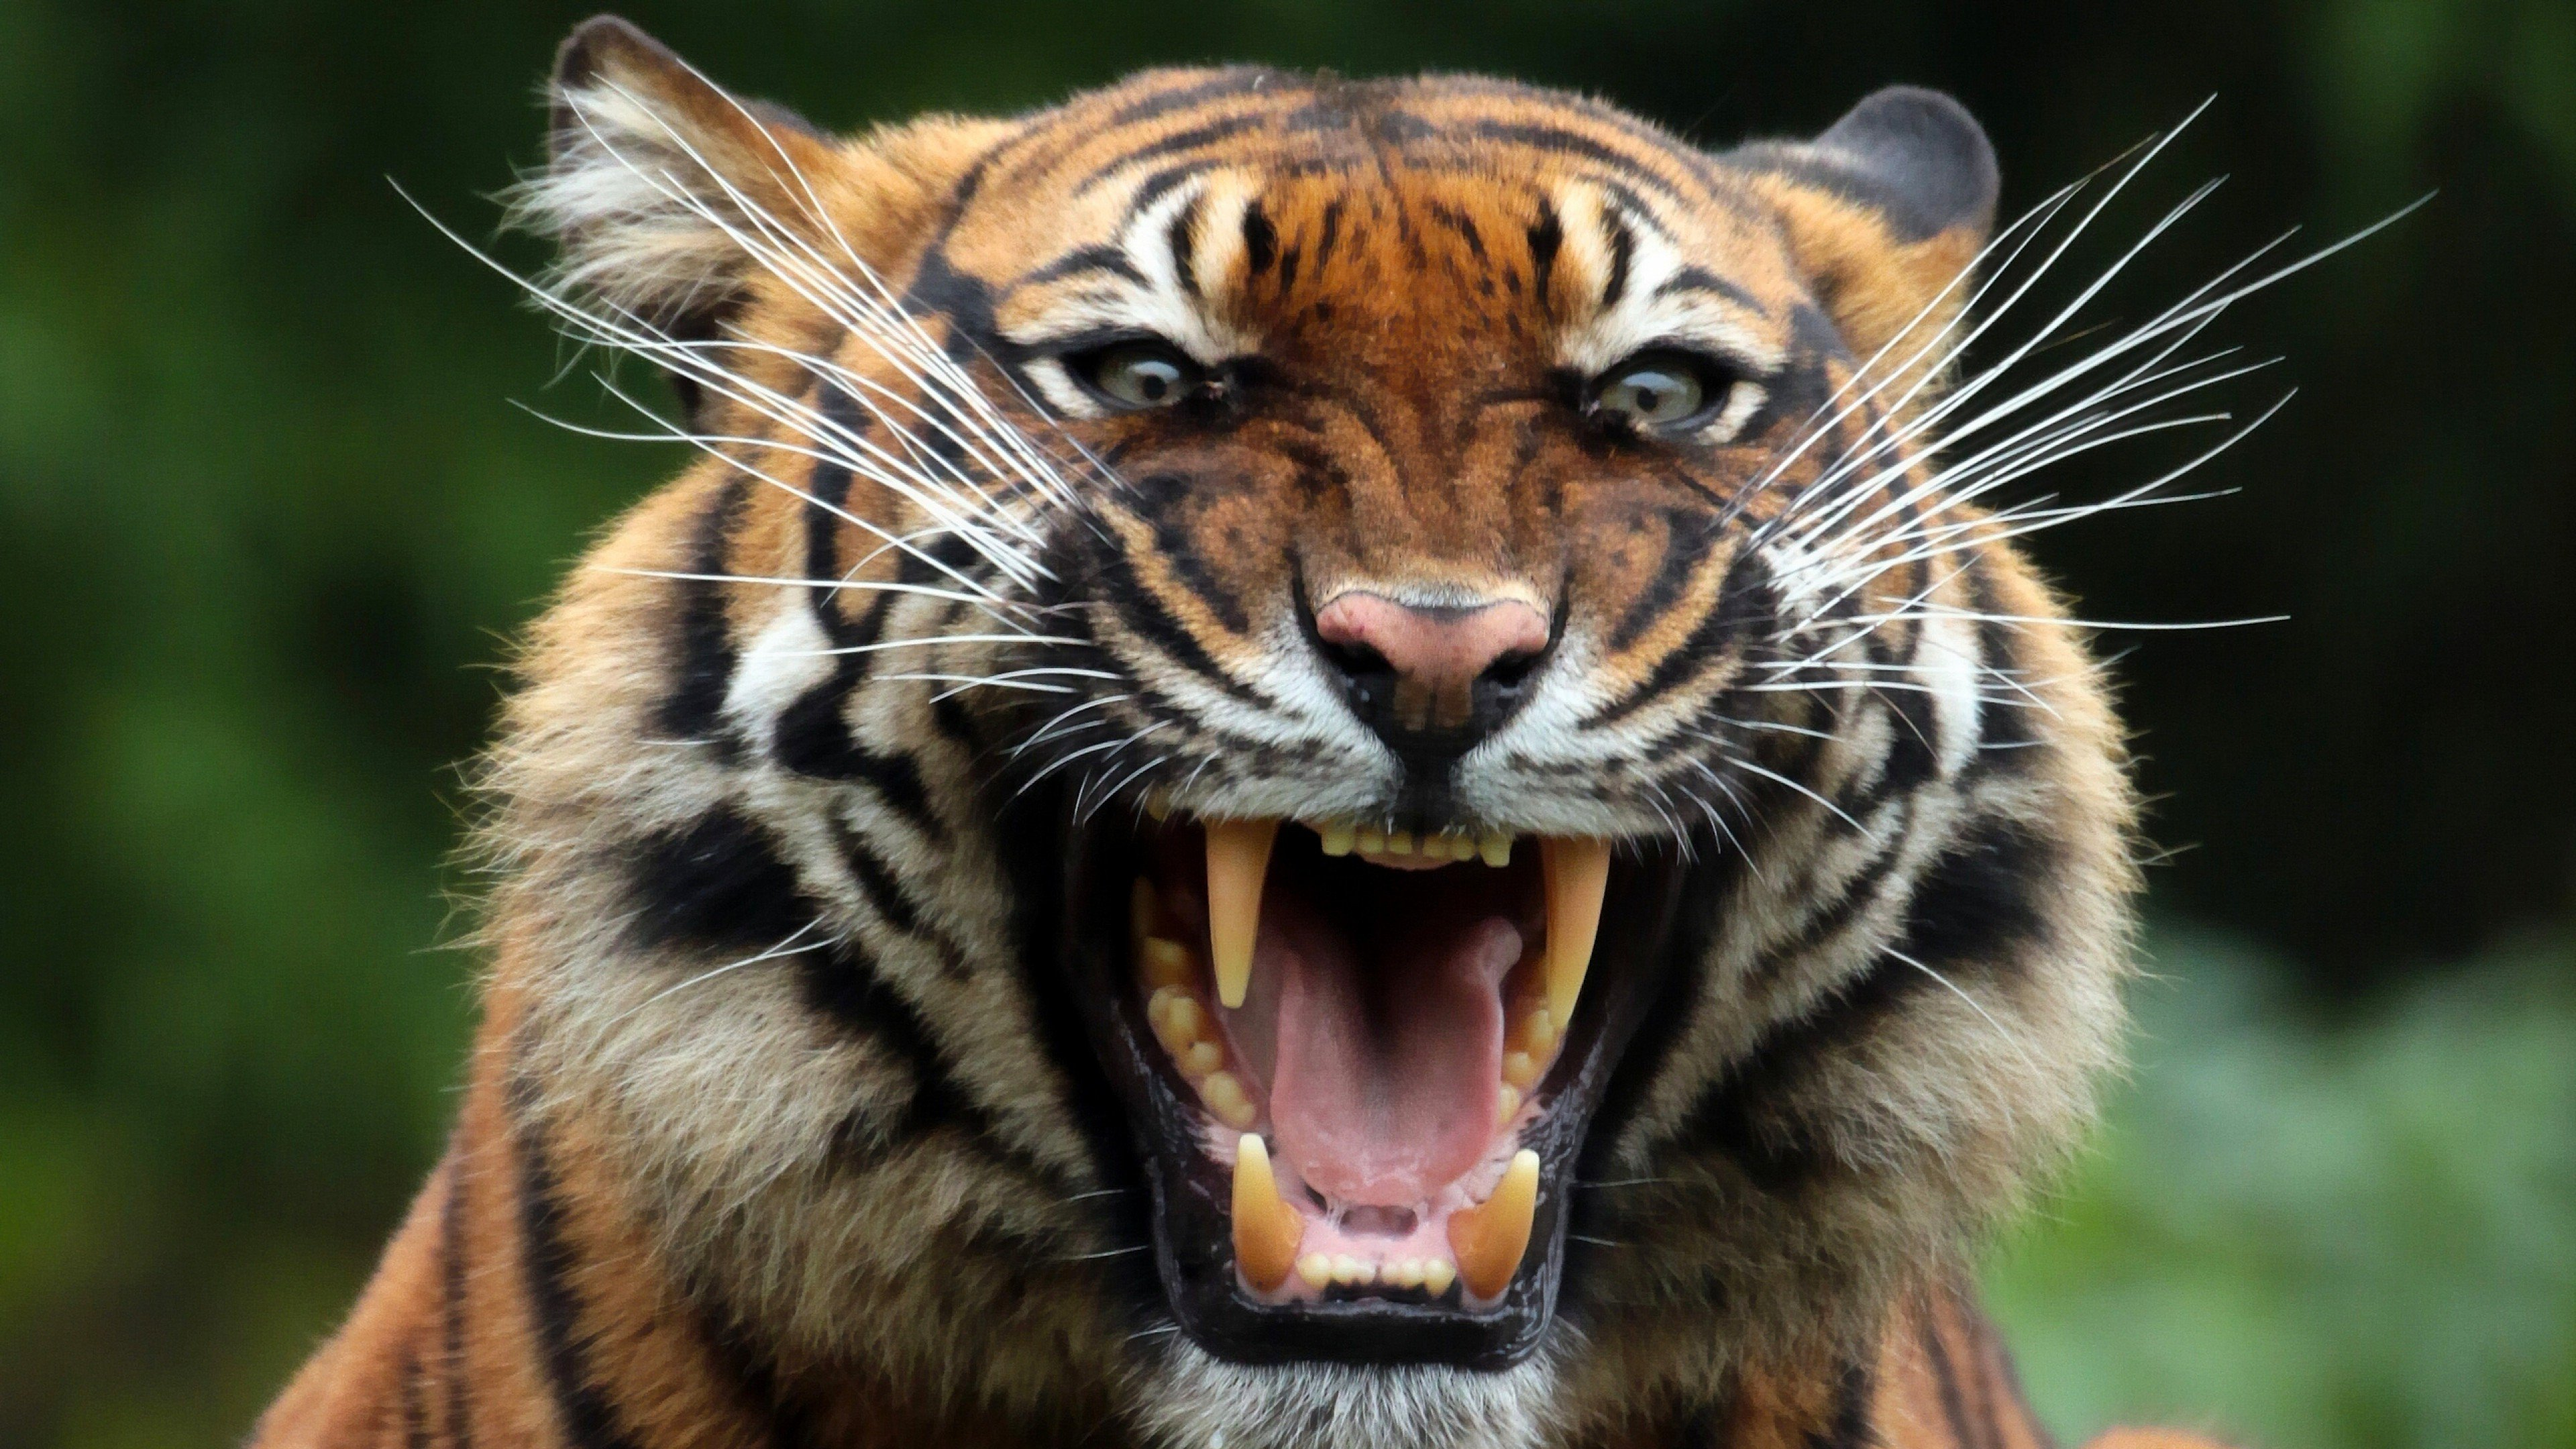 tiger teeths 4k 1542238046 - Tiger Teeths 4k - tiger wallpapers, teeth wallpapers, predator wallpapers, animals wallpapers